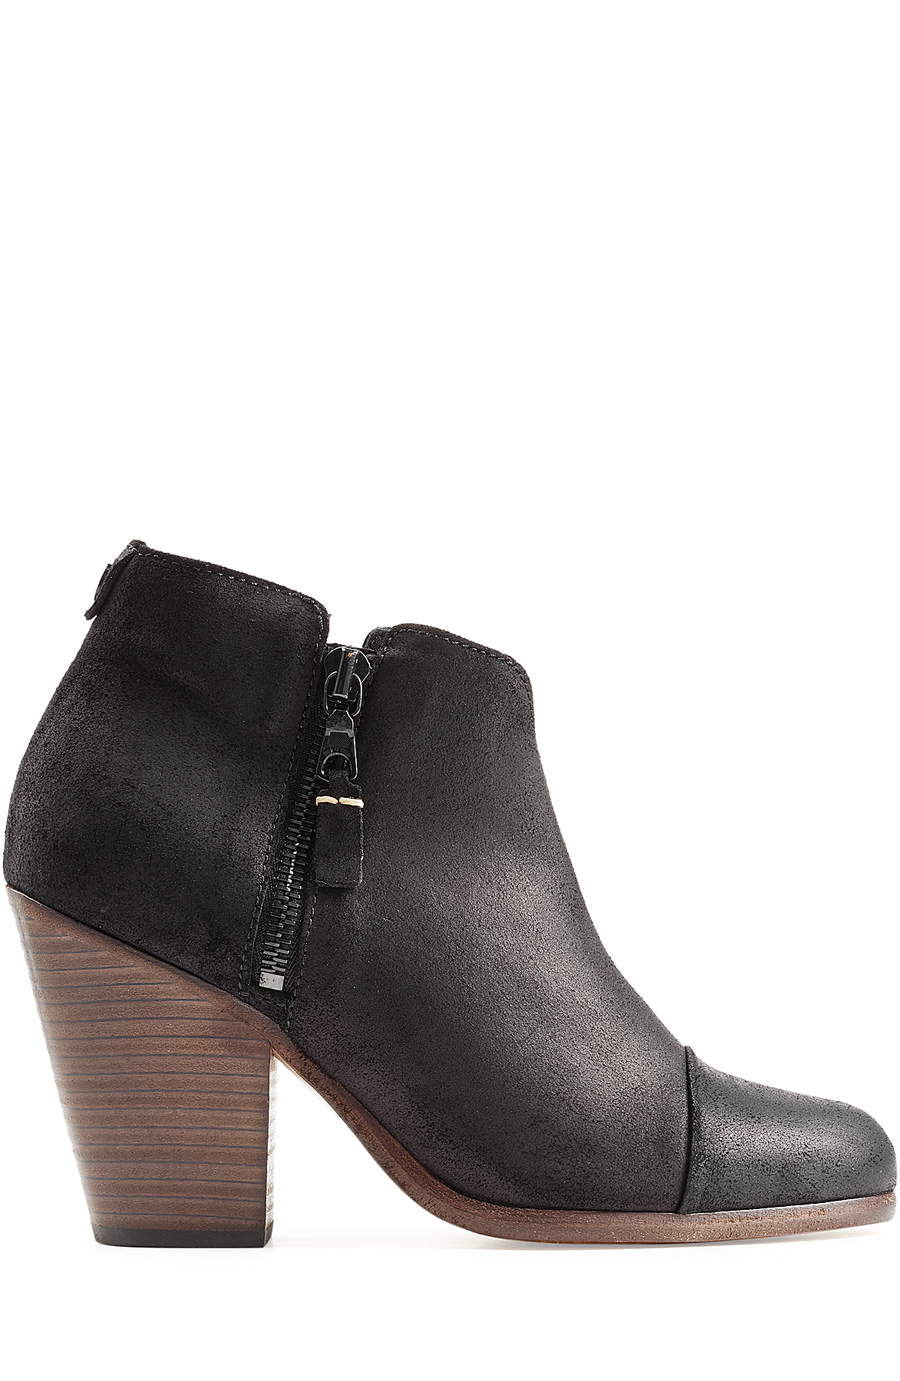 RAG AND BONE BLACK SUEDE CLASSIC MARGOT BOOTS